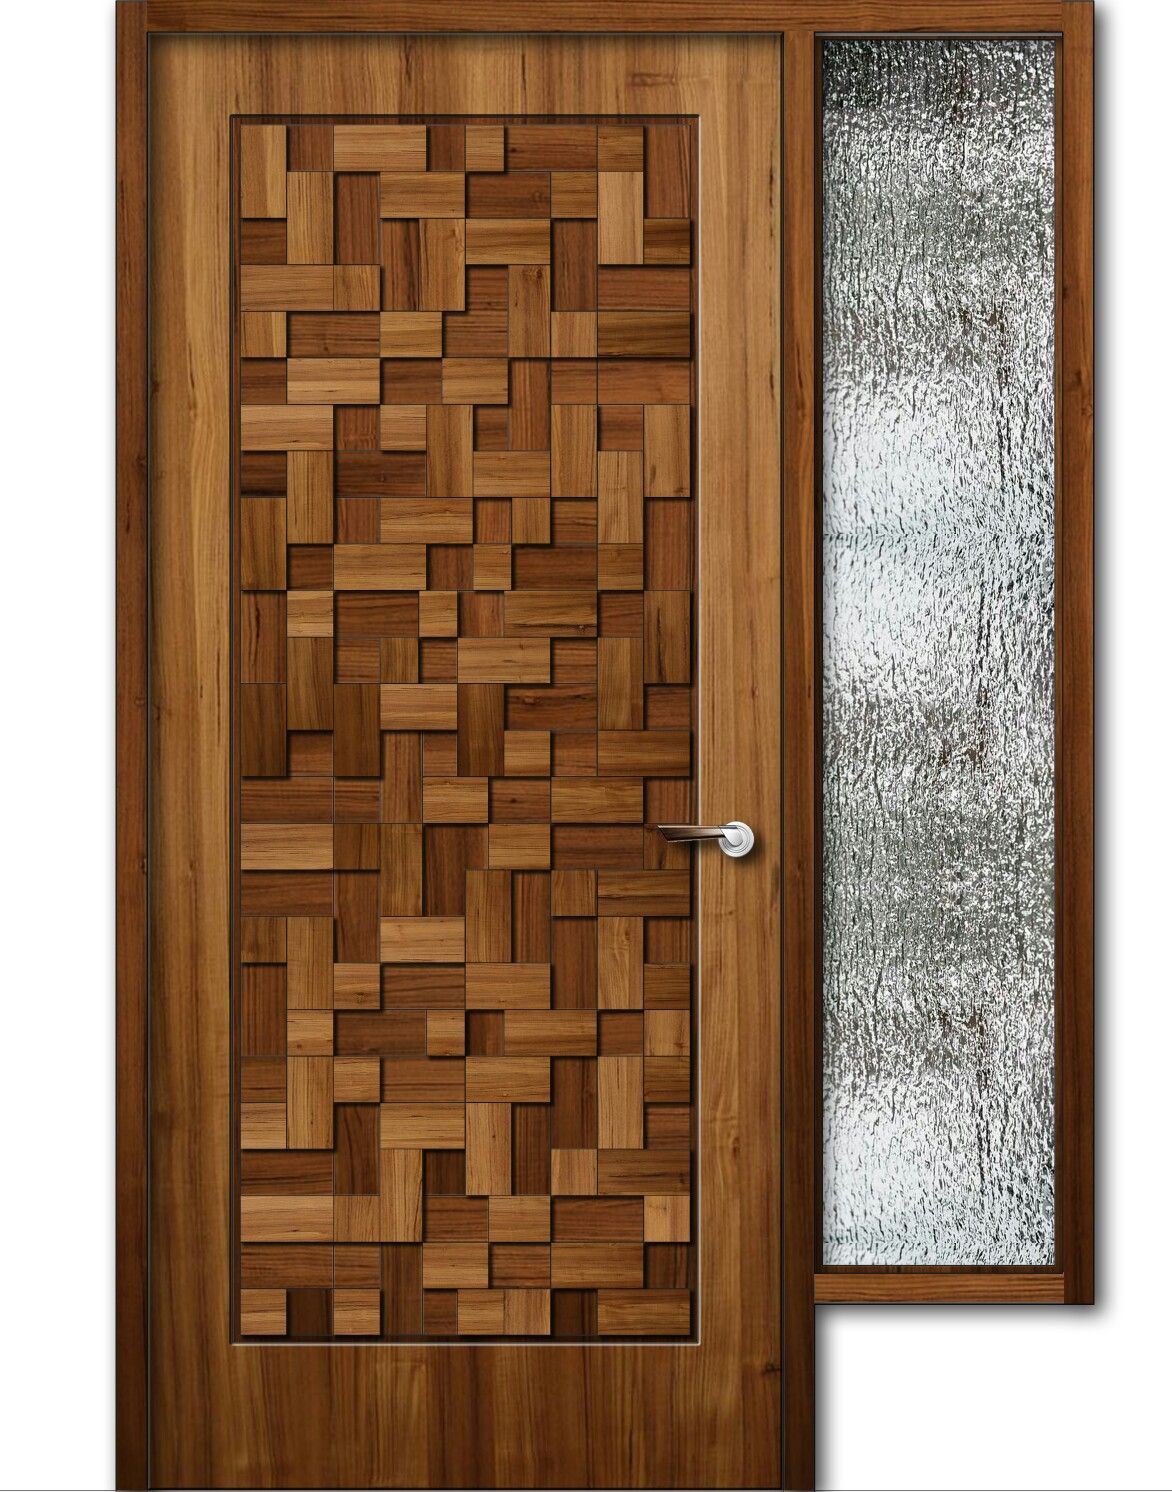 Teak wood finish wooden door with window 8feet height for Take door designs